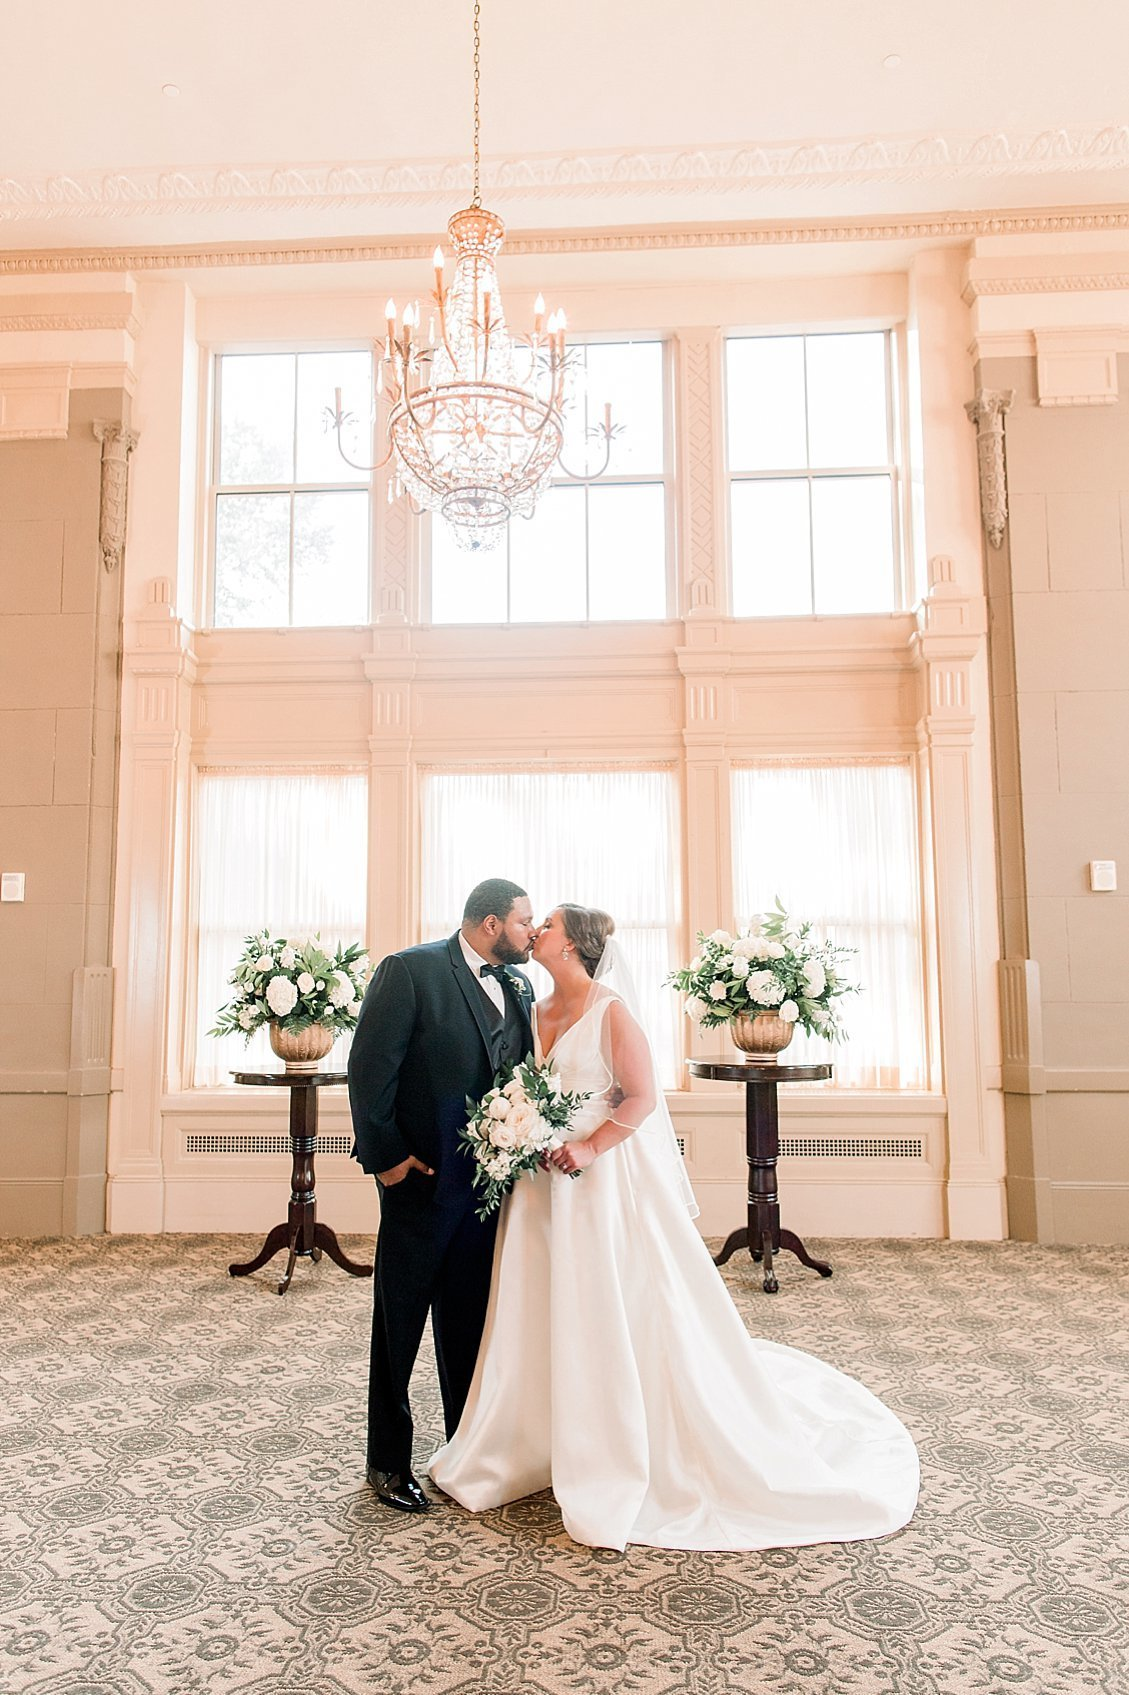 sharonelizabethphotography-johnmarshallballrooms-richmondvirginiaweddingphotographer-classicballroomwedding-johnmarshallballroomwedding{seq}3131